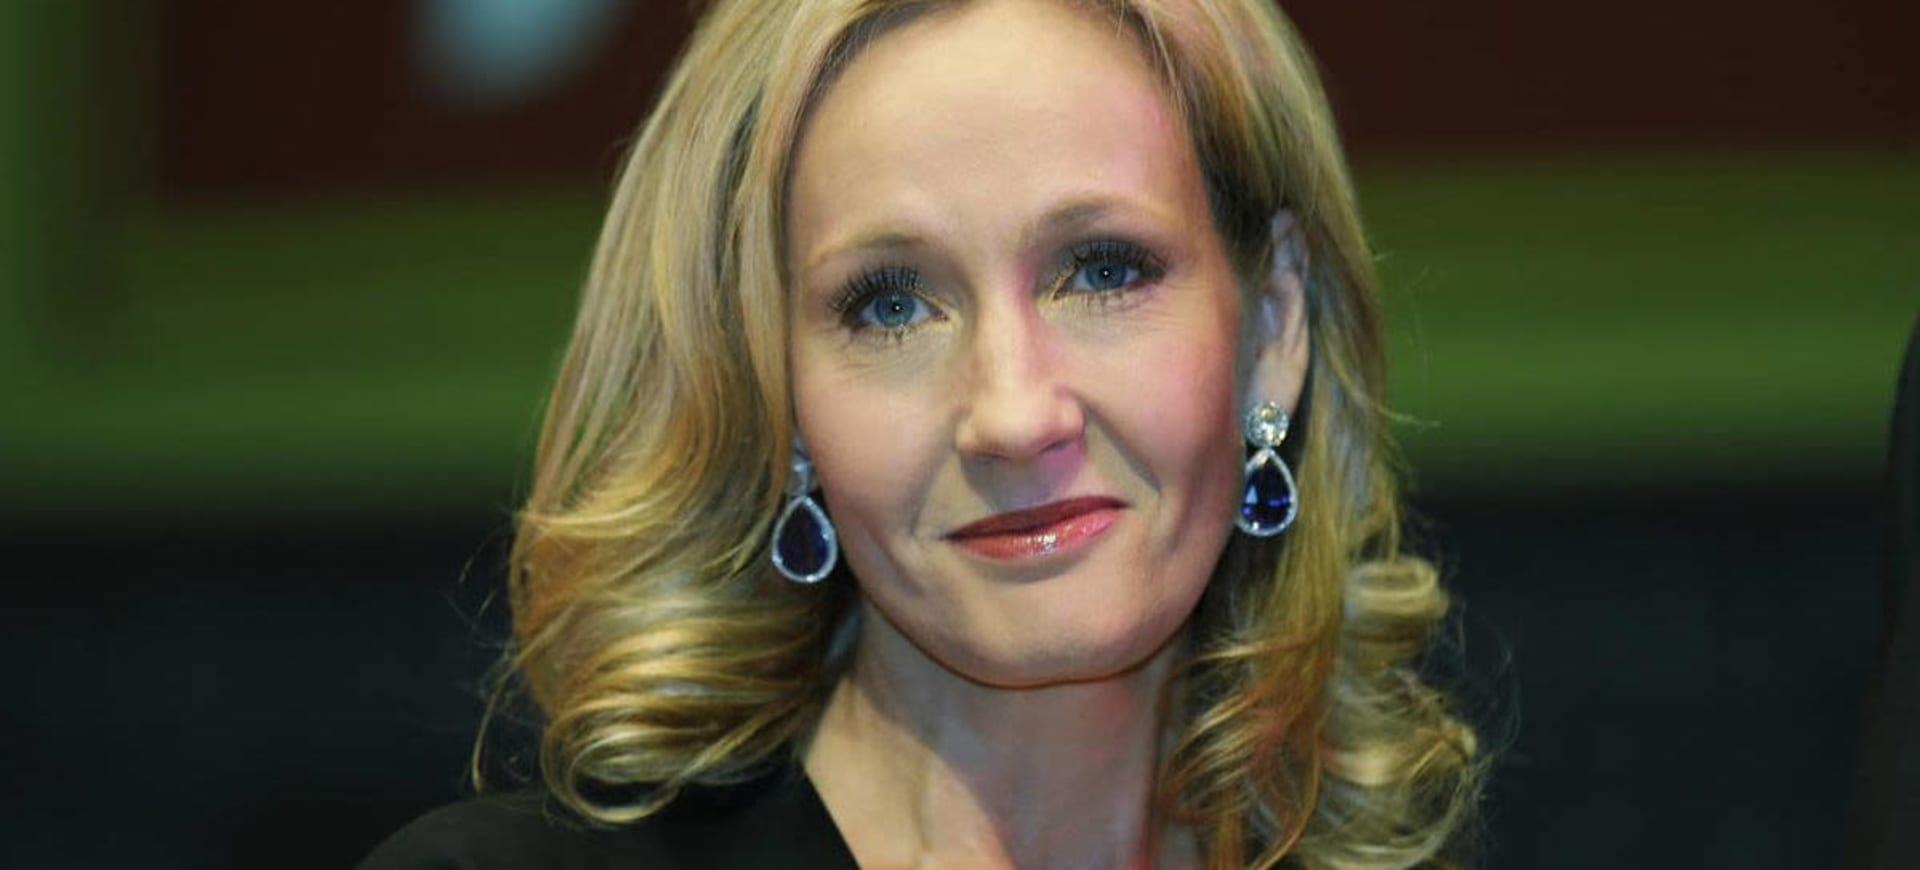 JK Rowling donates £1m to help homeless and domestic abuse victims